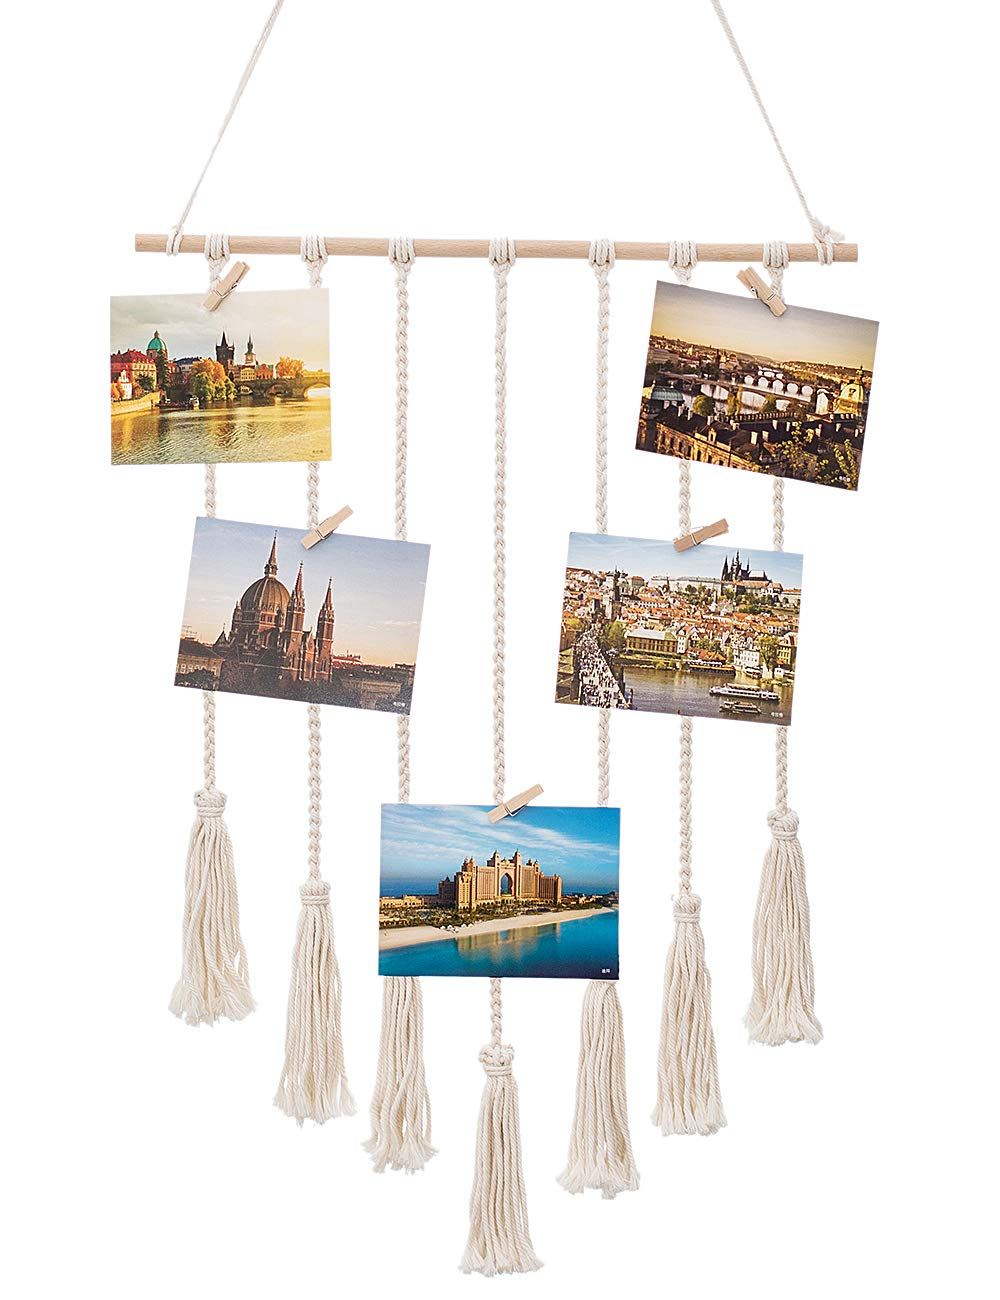 YXMYH Hanging Photo Display Macrame Wall Hanging Pictures Organizer Home Decor, Bohemian Home Decor, with 25 Wood Clips